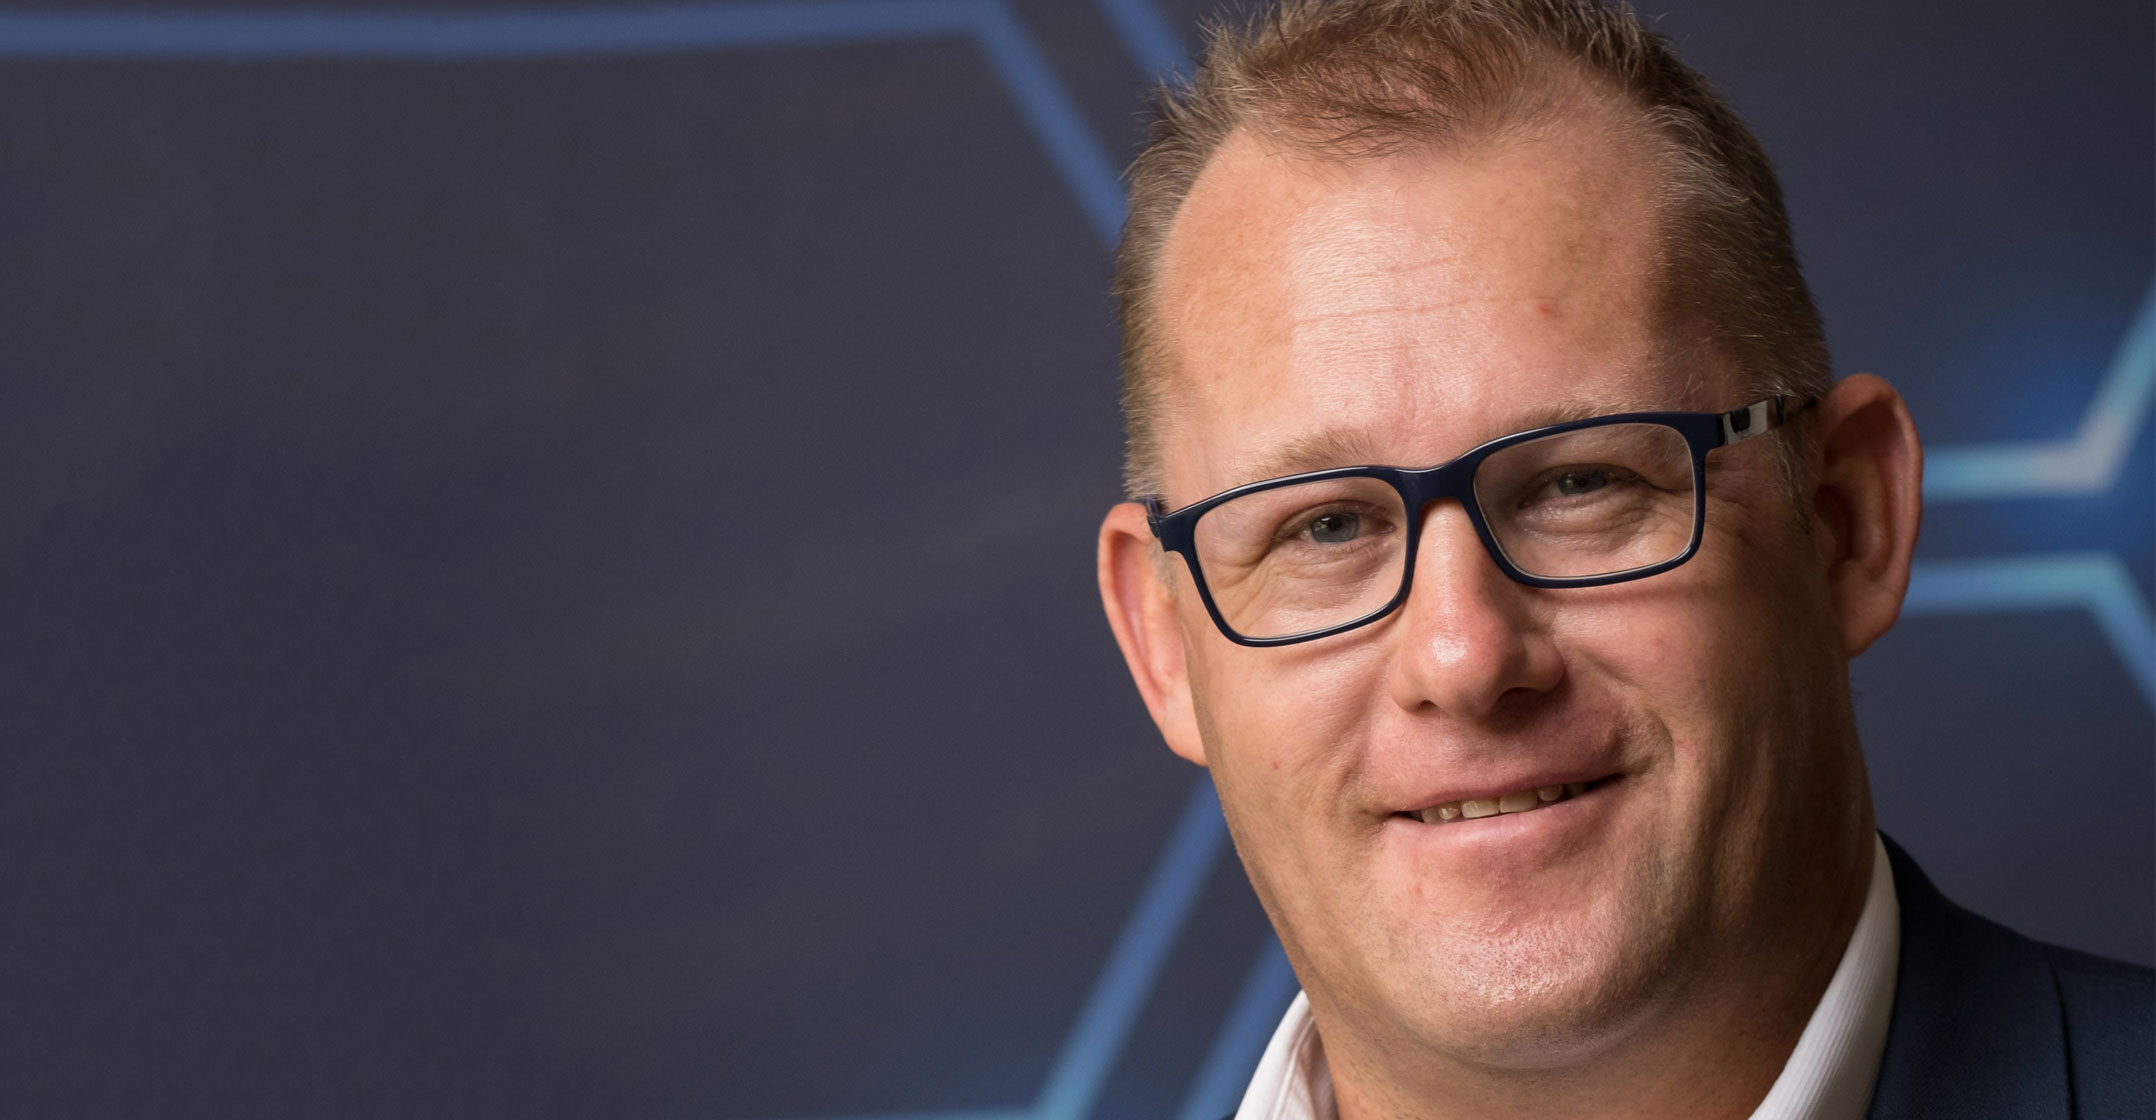 Get workload agile at South African Dell Technologies Forum 2020 - TechCentral